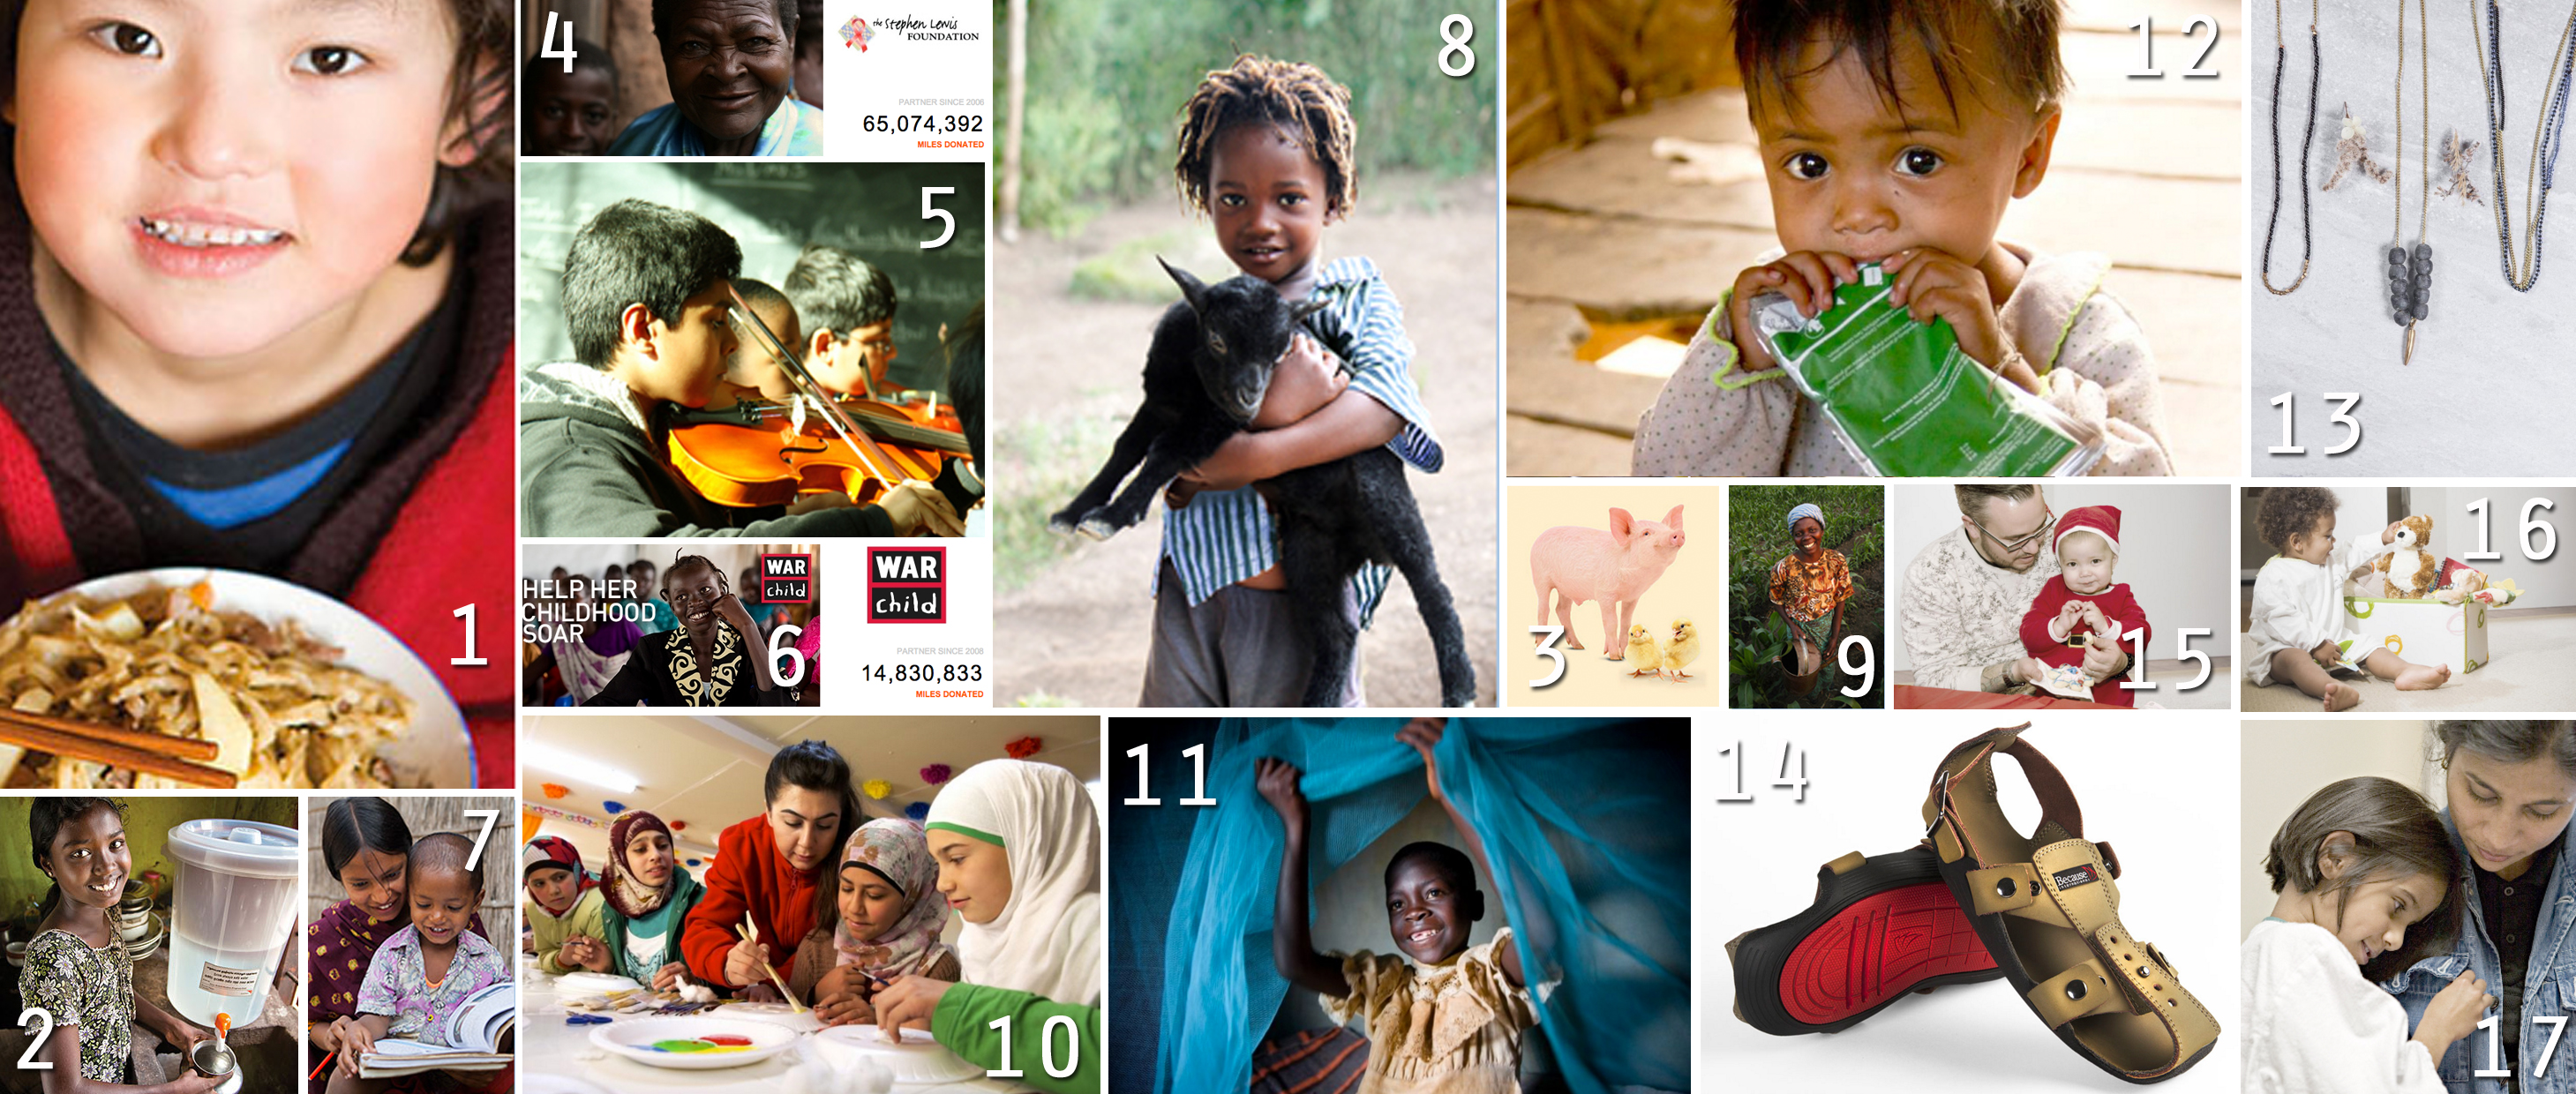 Top 20 charitable holiday gifts (2015)